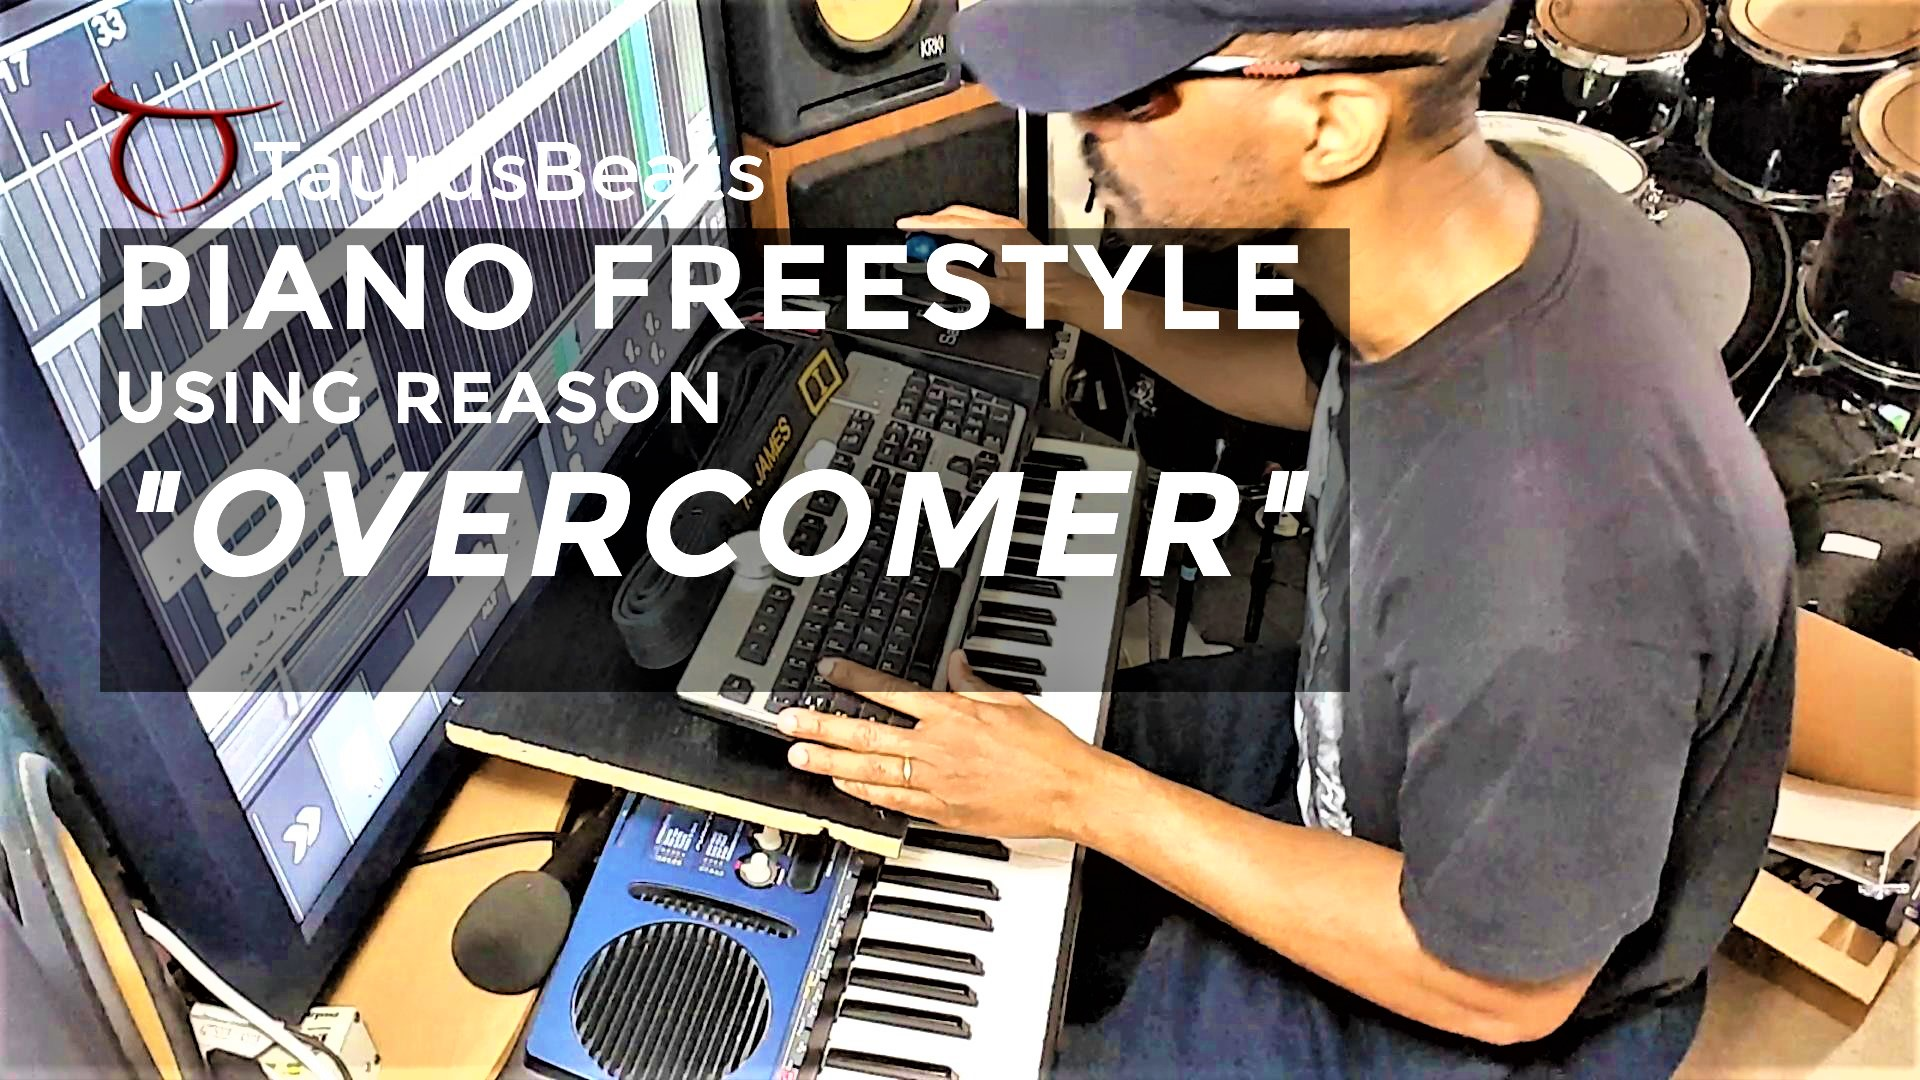 image for Piano Freestyle Beat Video - Overcomer